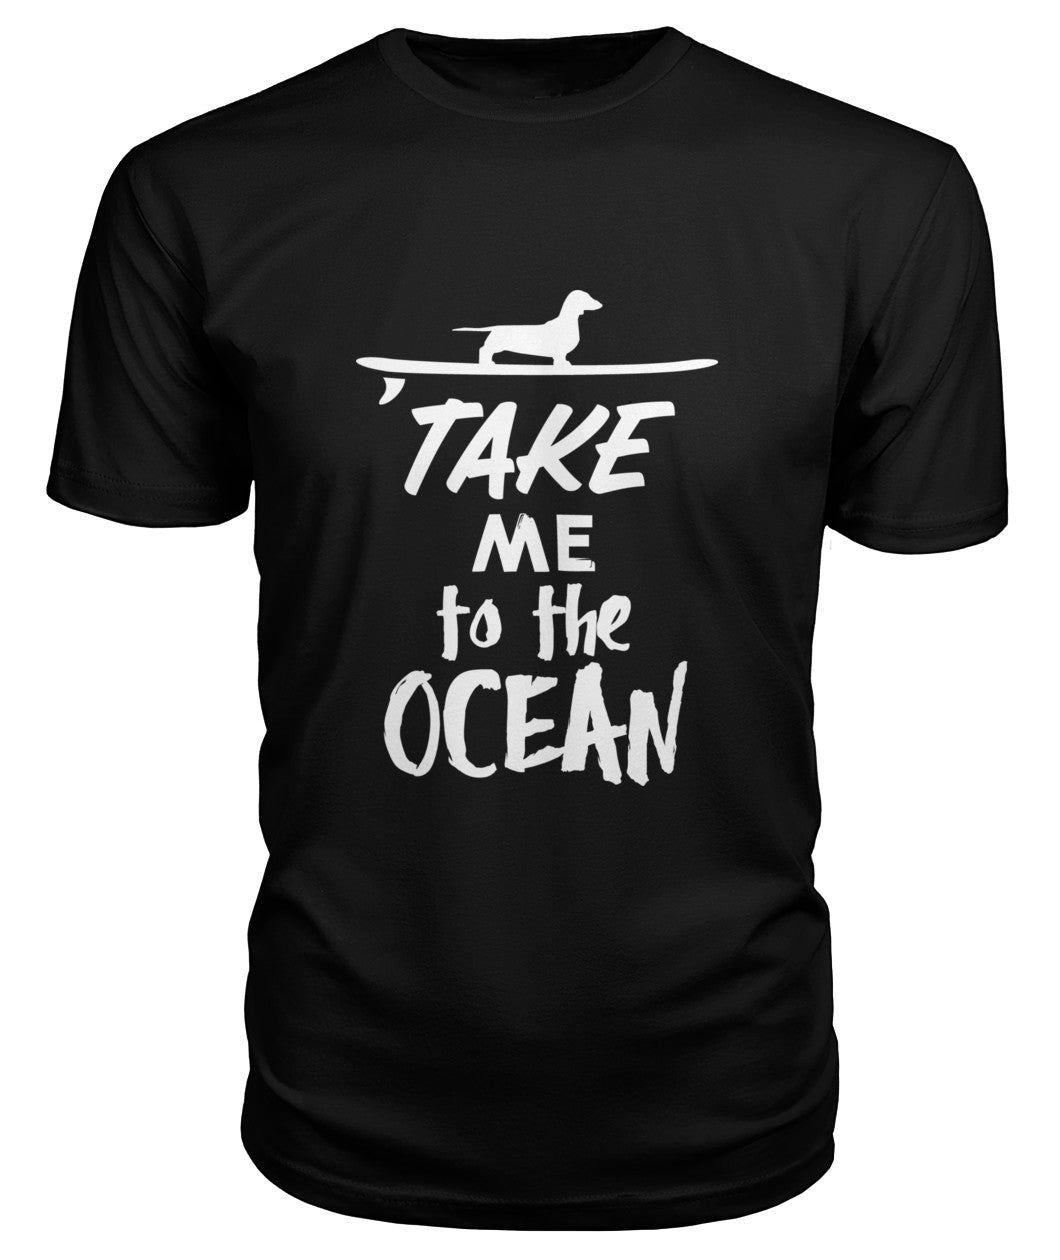 Take me to the ocean - Premium T-Shirt